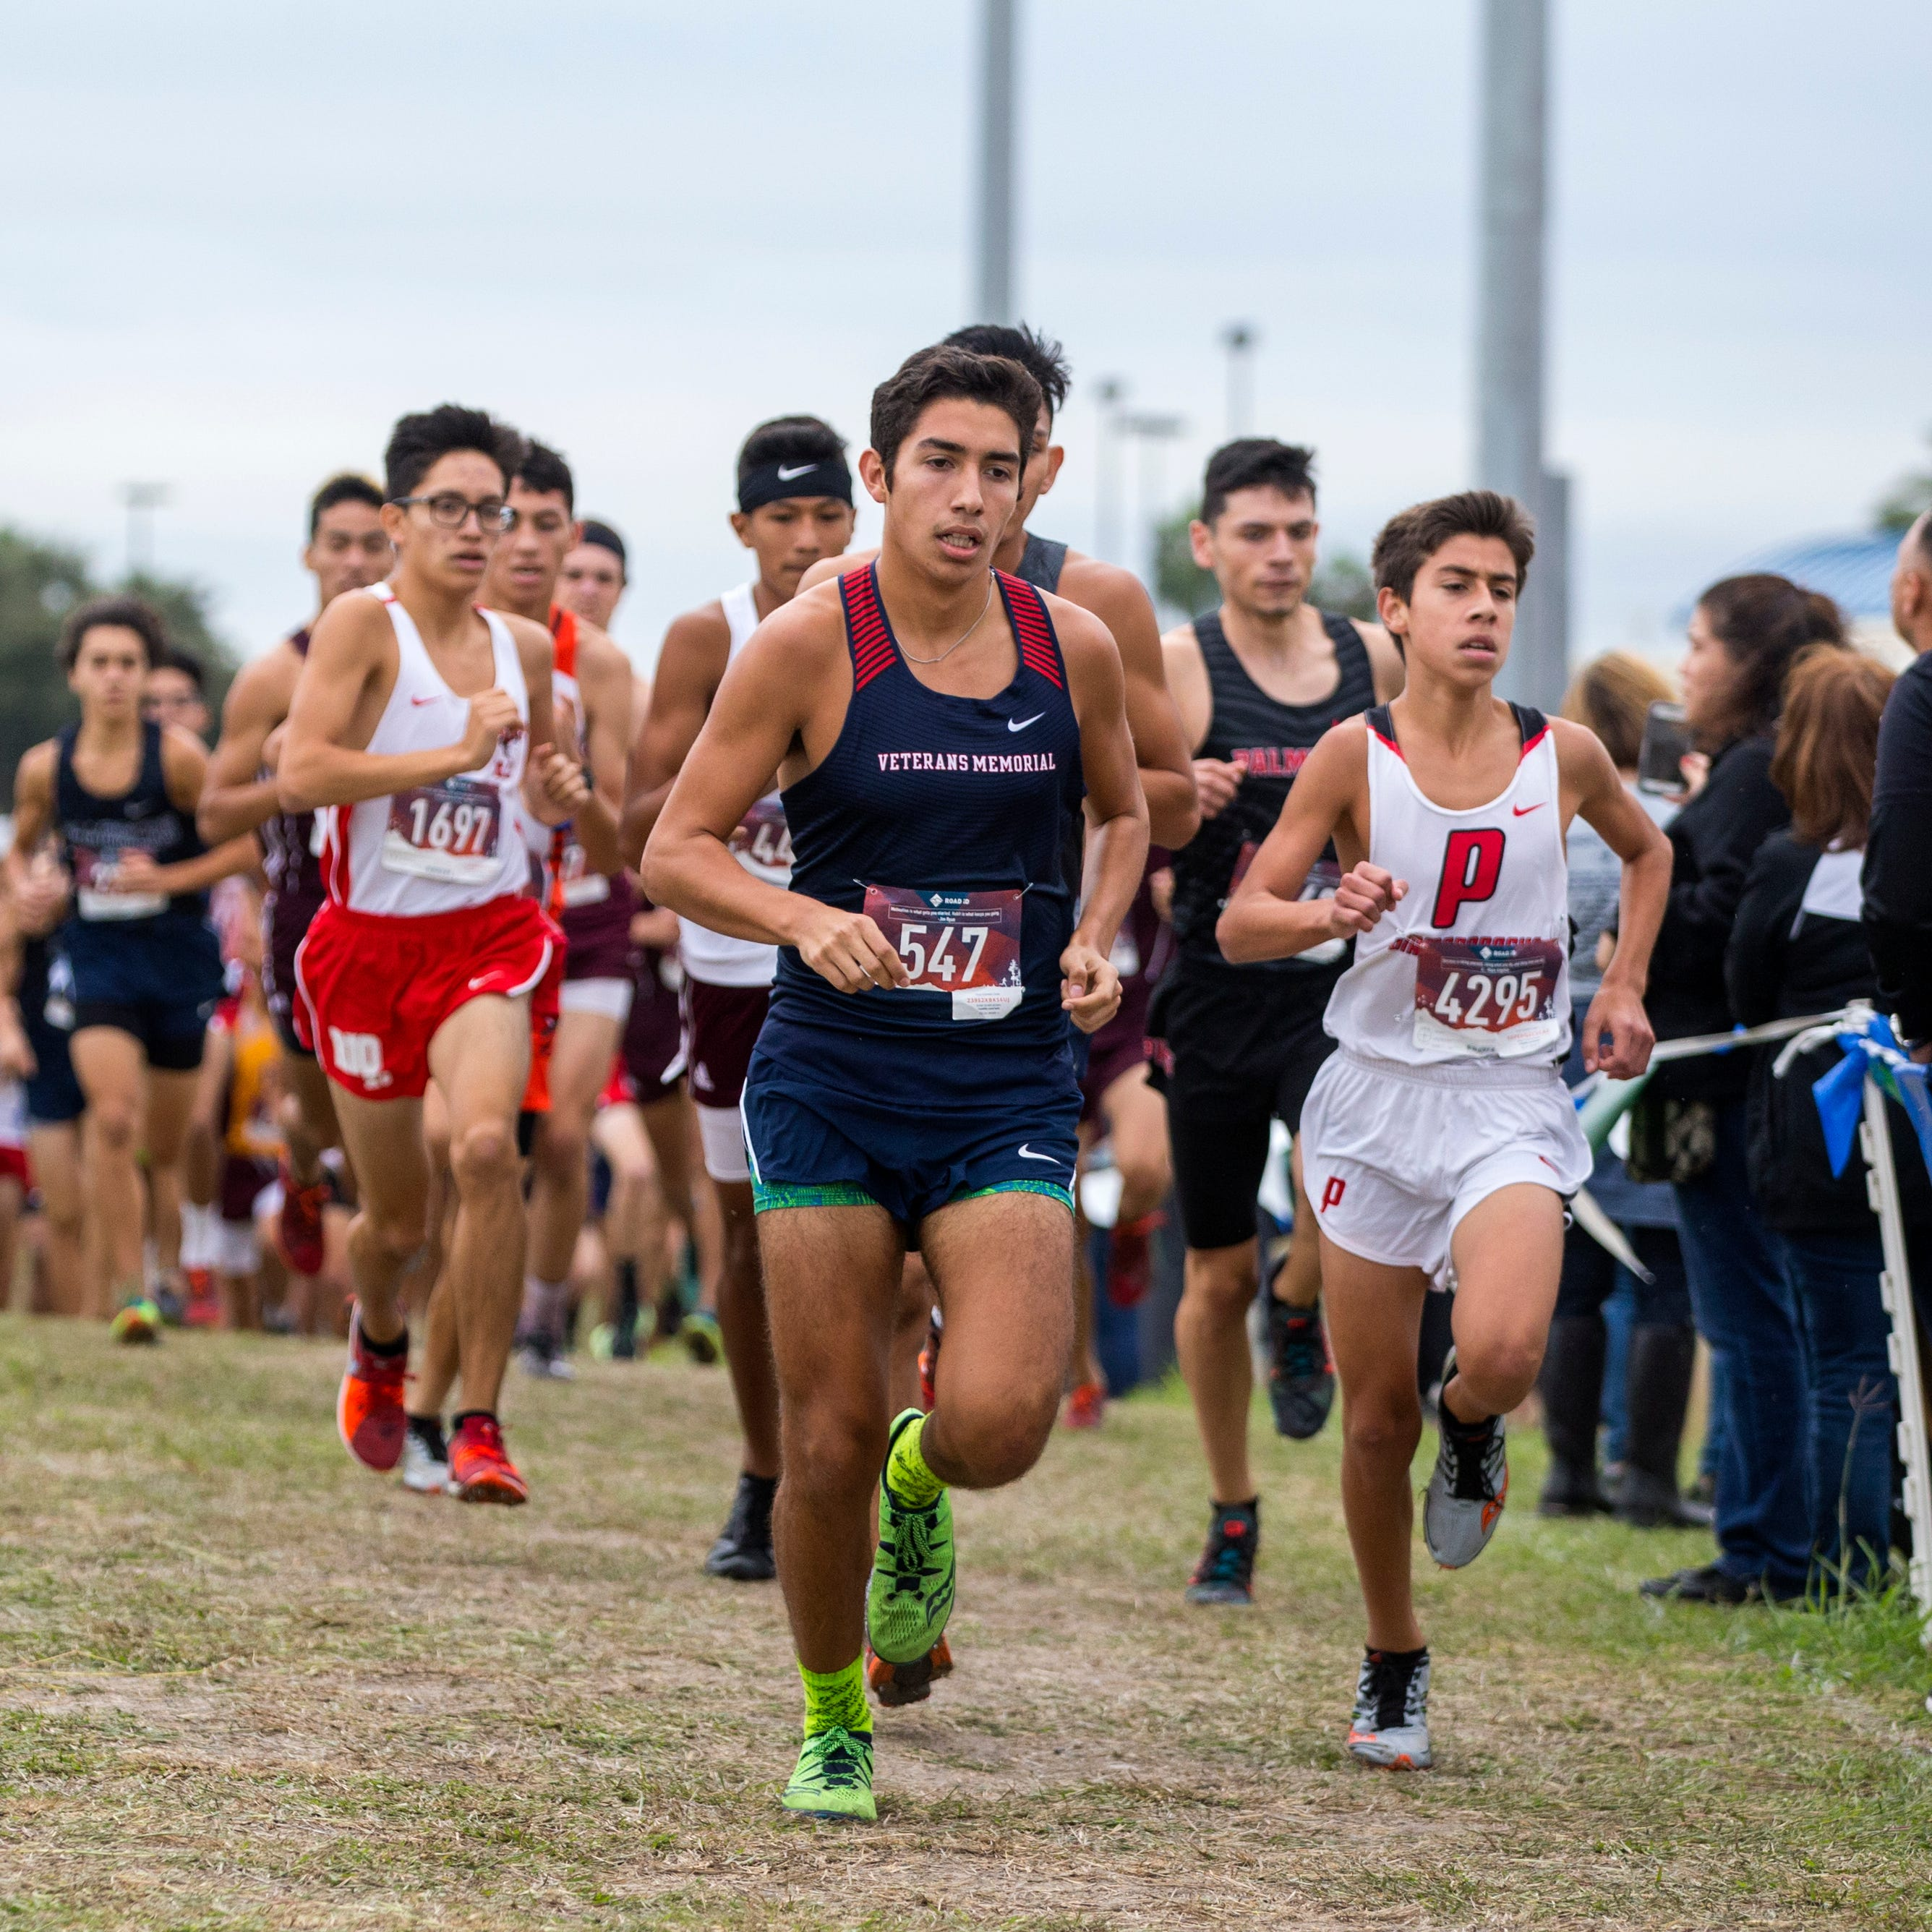 Orange Grove's Trevino finishes 2nd at Region IV cross country meet